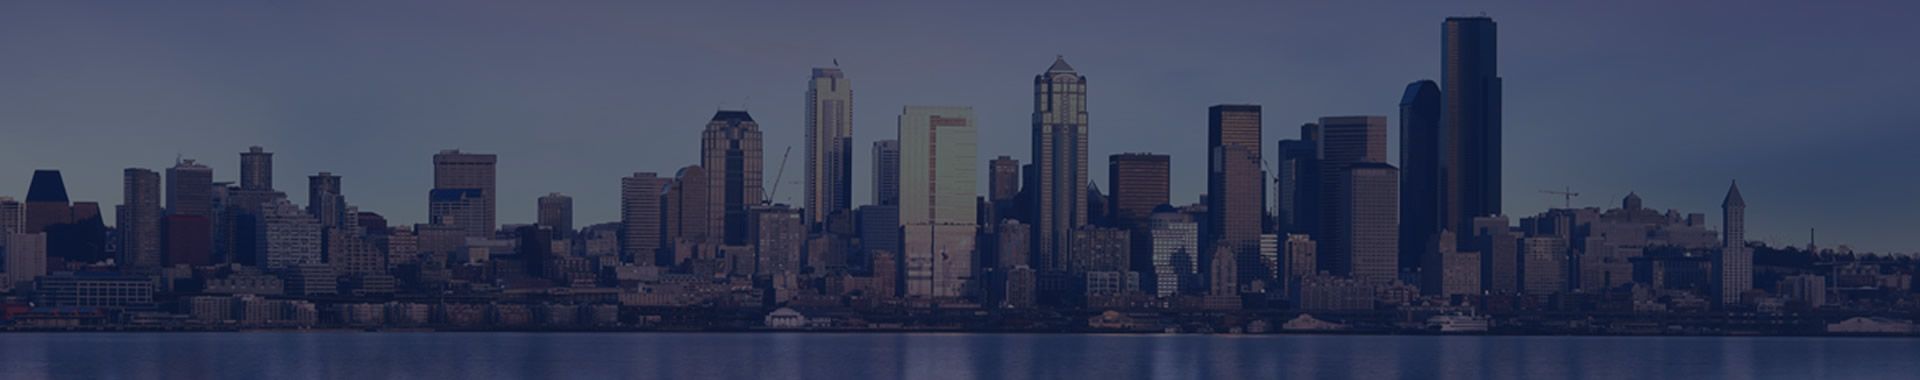 Panoramic photo of Seattle Washington, space needle and city skyline.